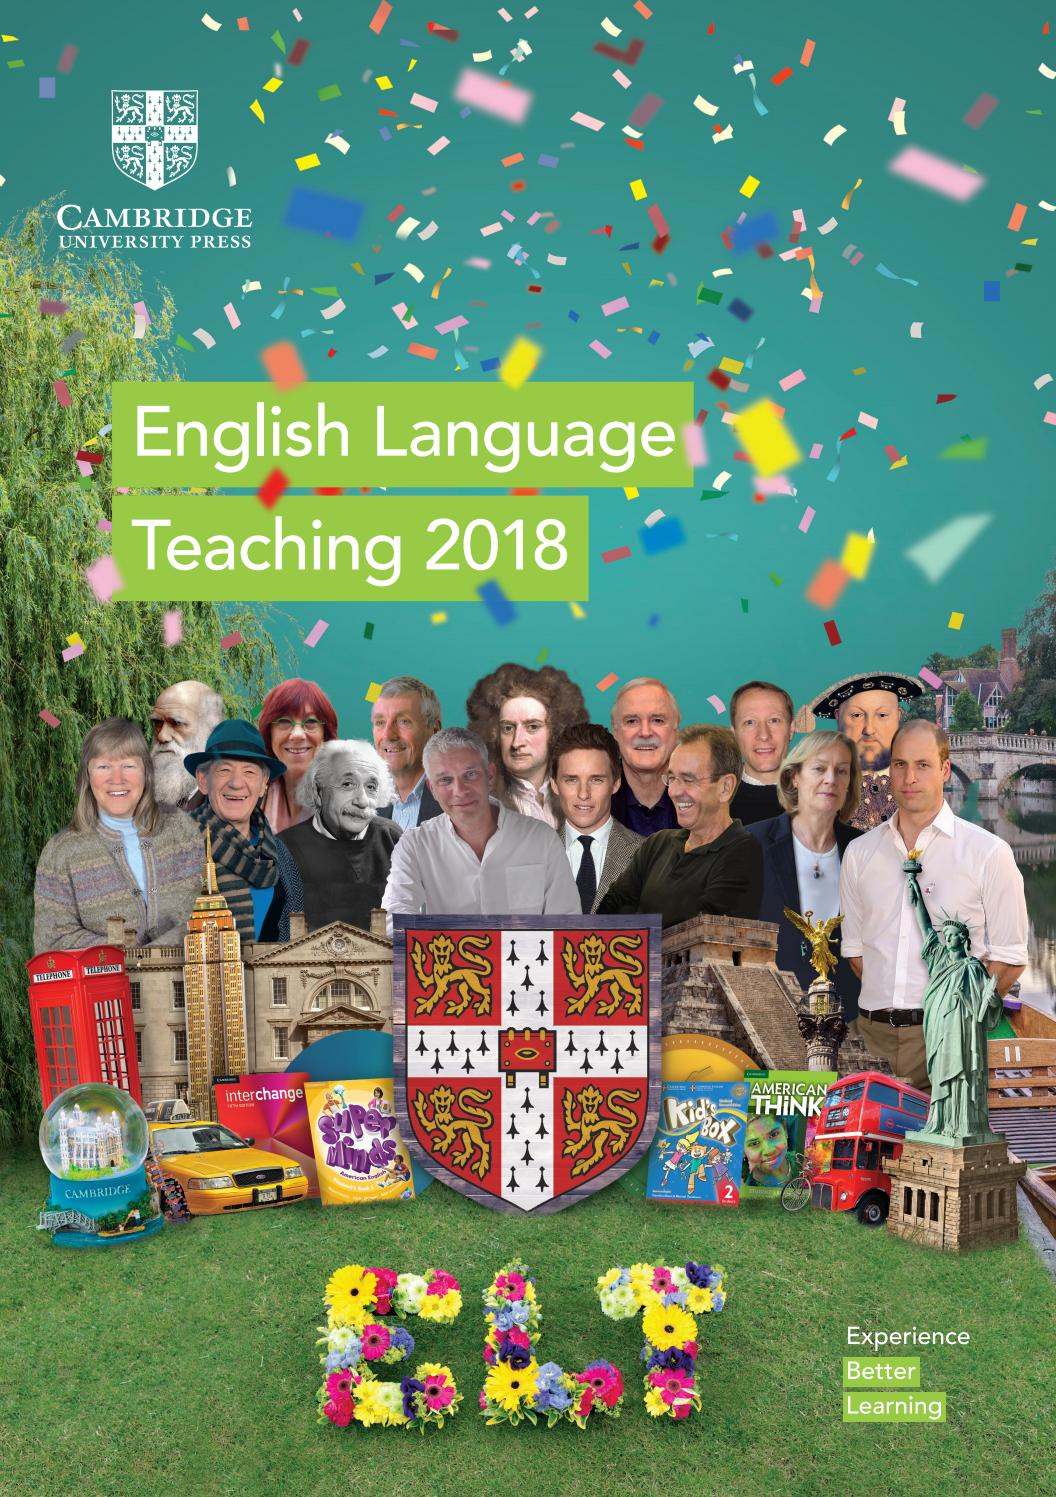 2018 ELT Cambridge University Press Catalogue Mexico by Cambridge  University Press - issuu